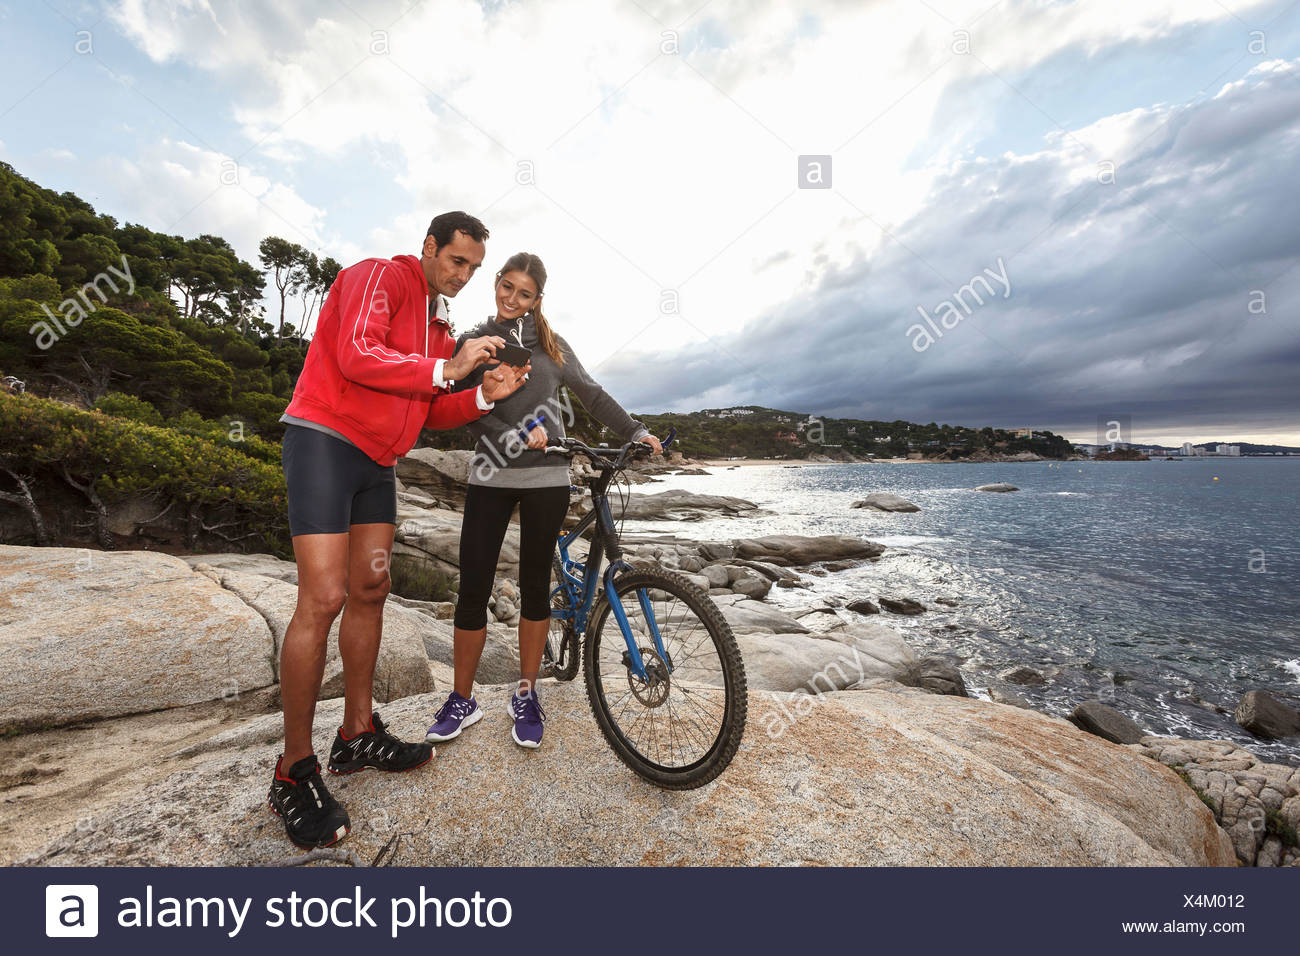 Couple taking picture on boulder - Stock Image